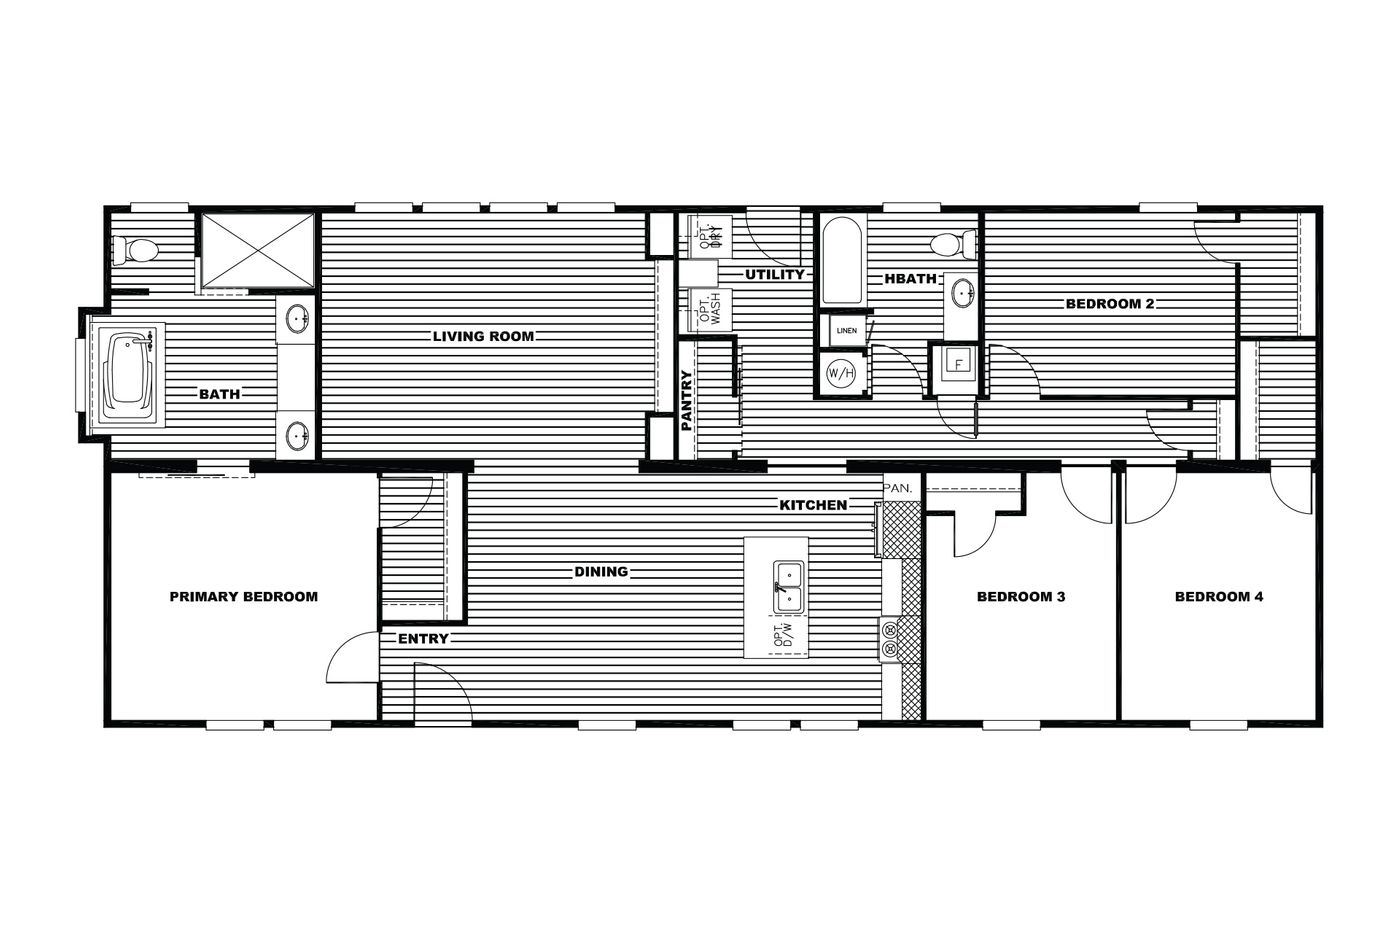 The THE FRANKLIN XL Floor Plan. This Manufactured Mobile Home features 4 bedrooms and 2 baths.